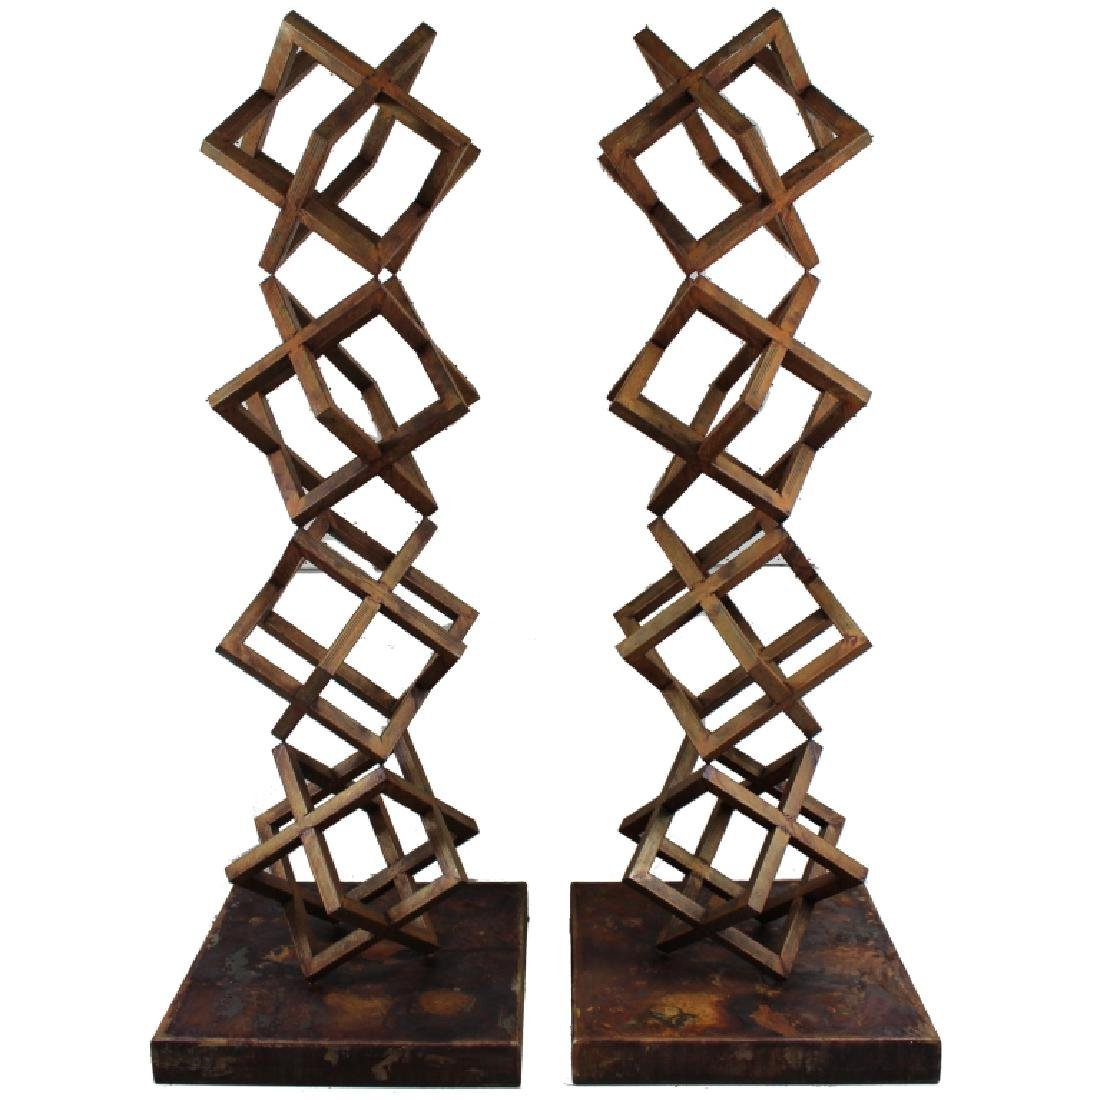 (2) PAIR MONUMENTAL STACKED CUBE FORM SCULPTURE